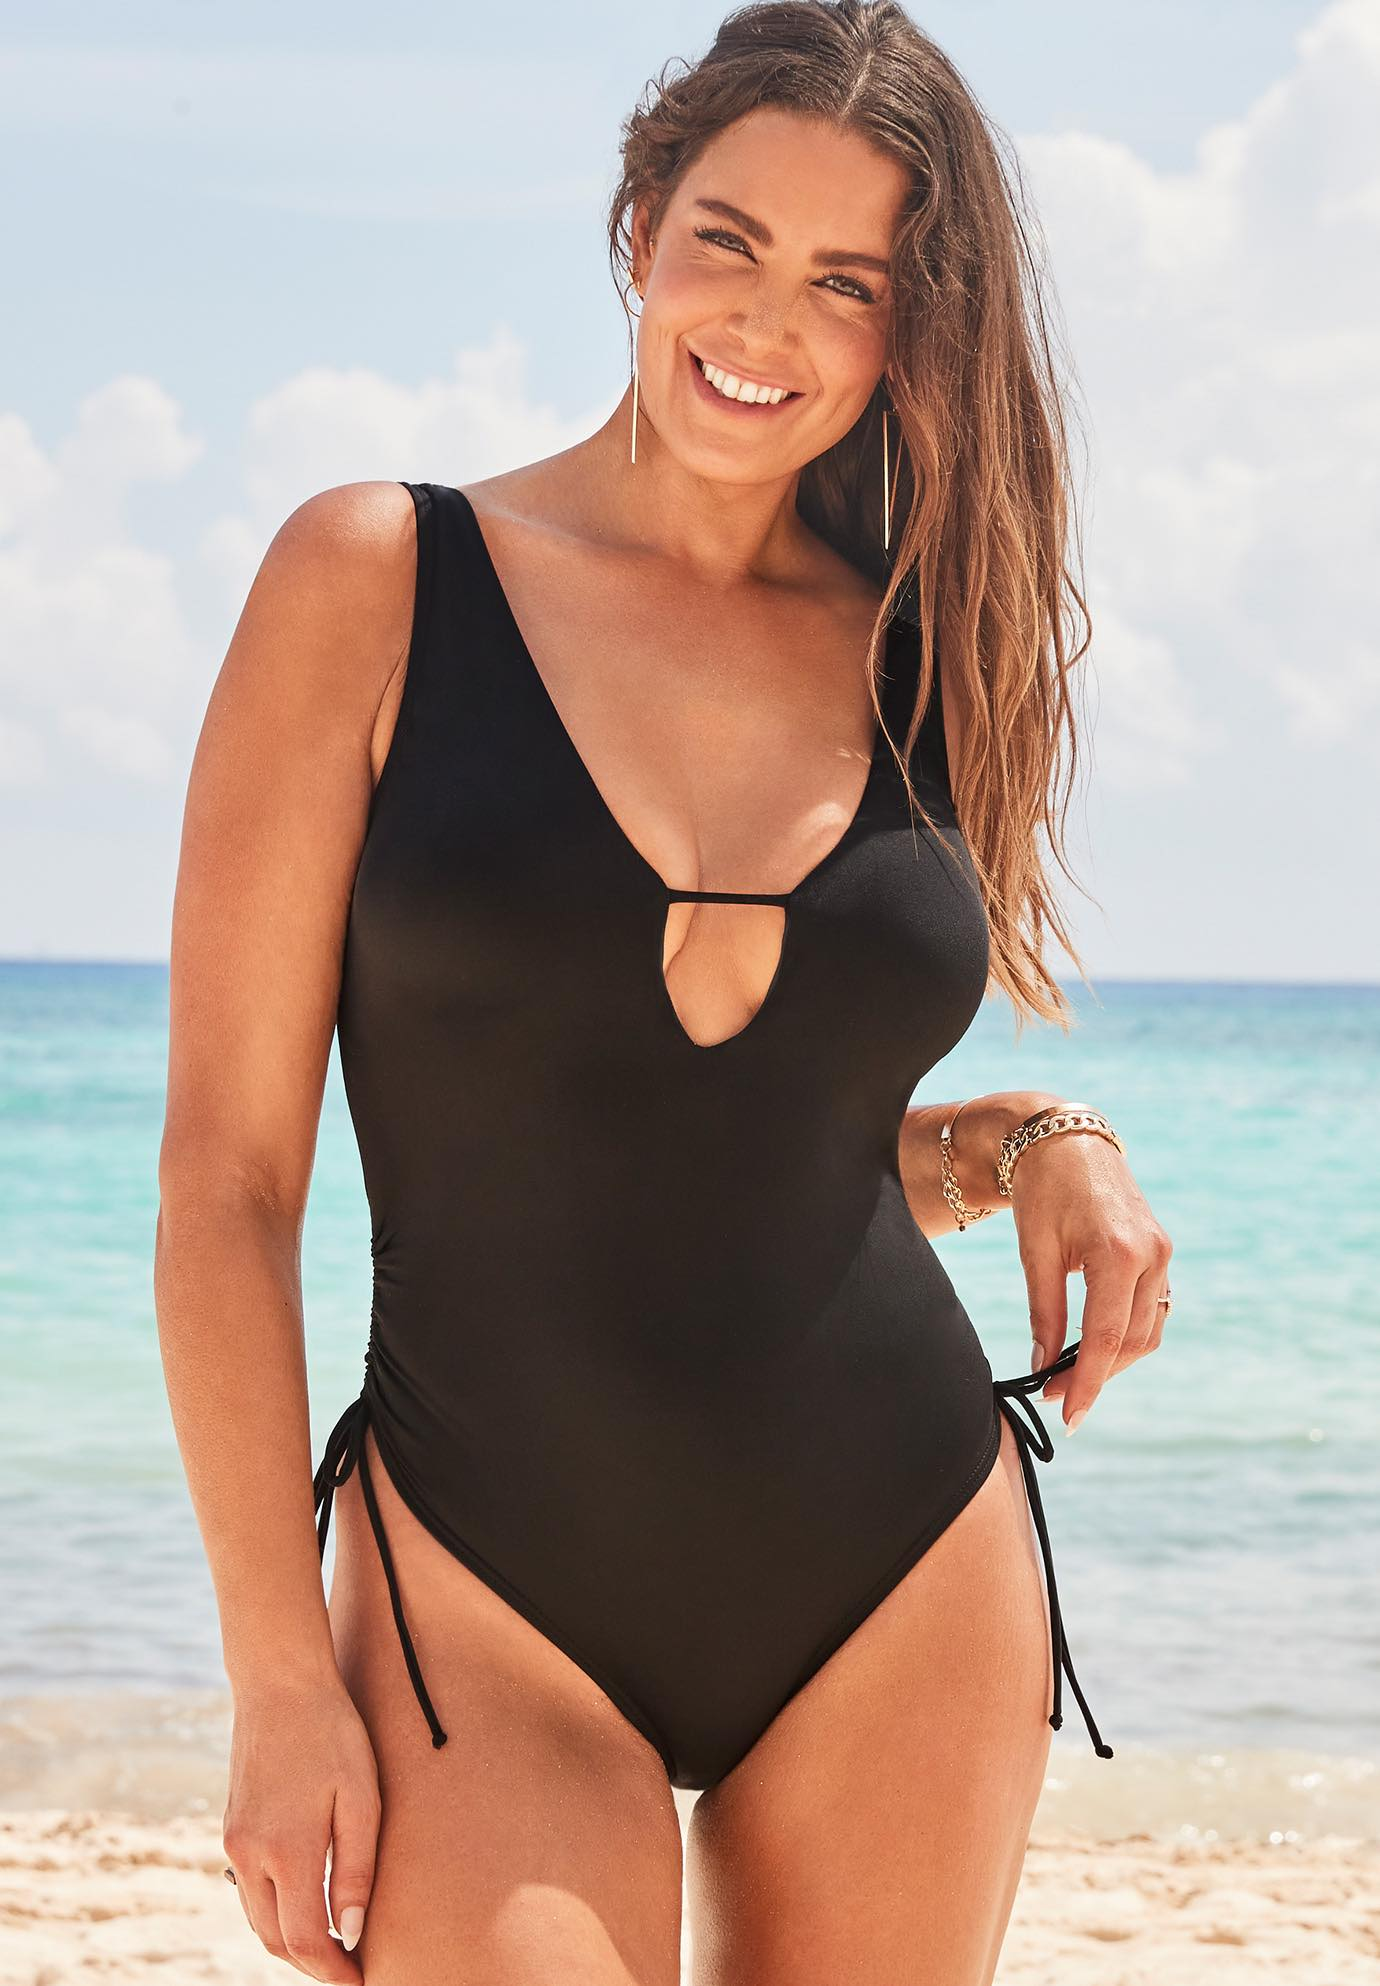 Ashley Graham A-List Plunge One Piece Swimsuit,